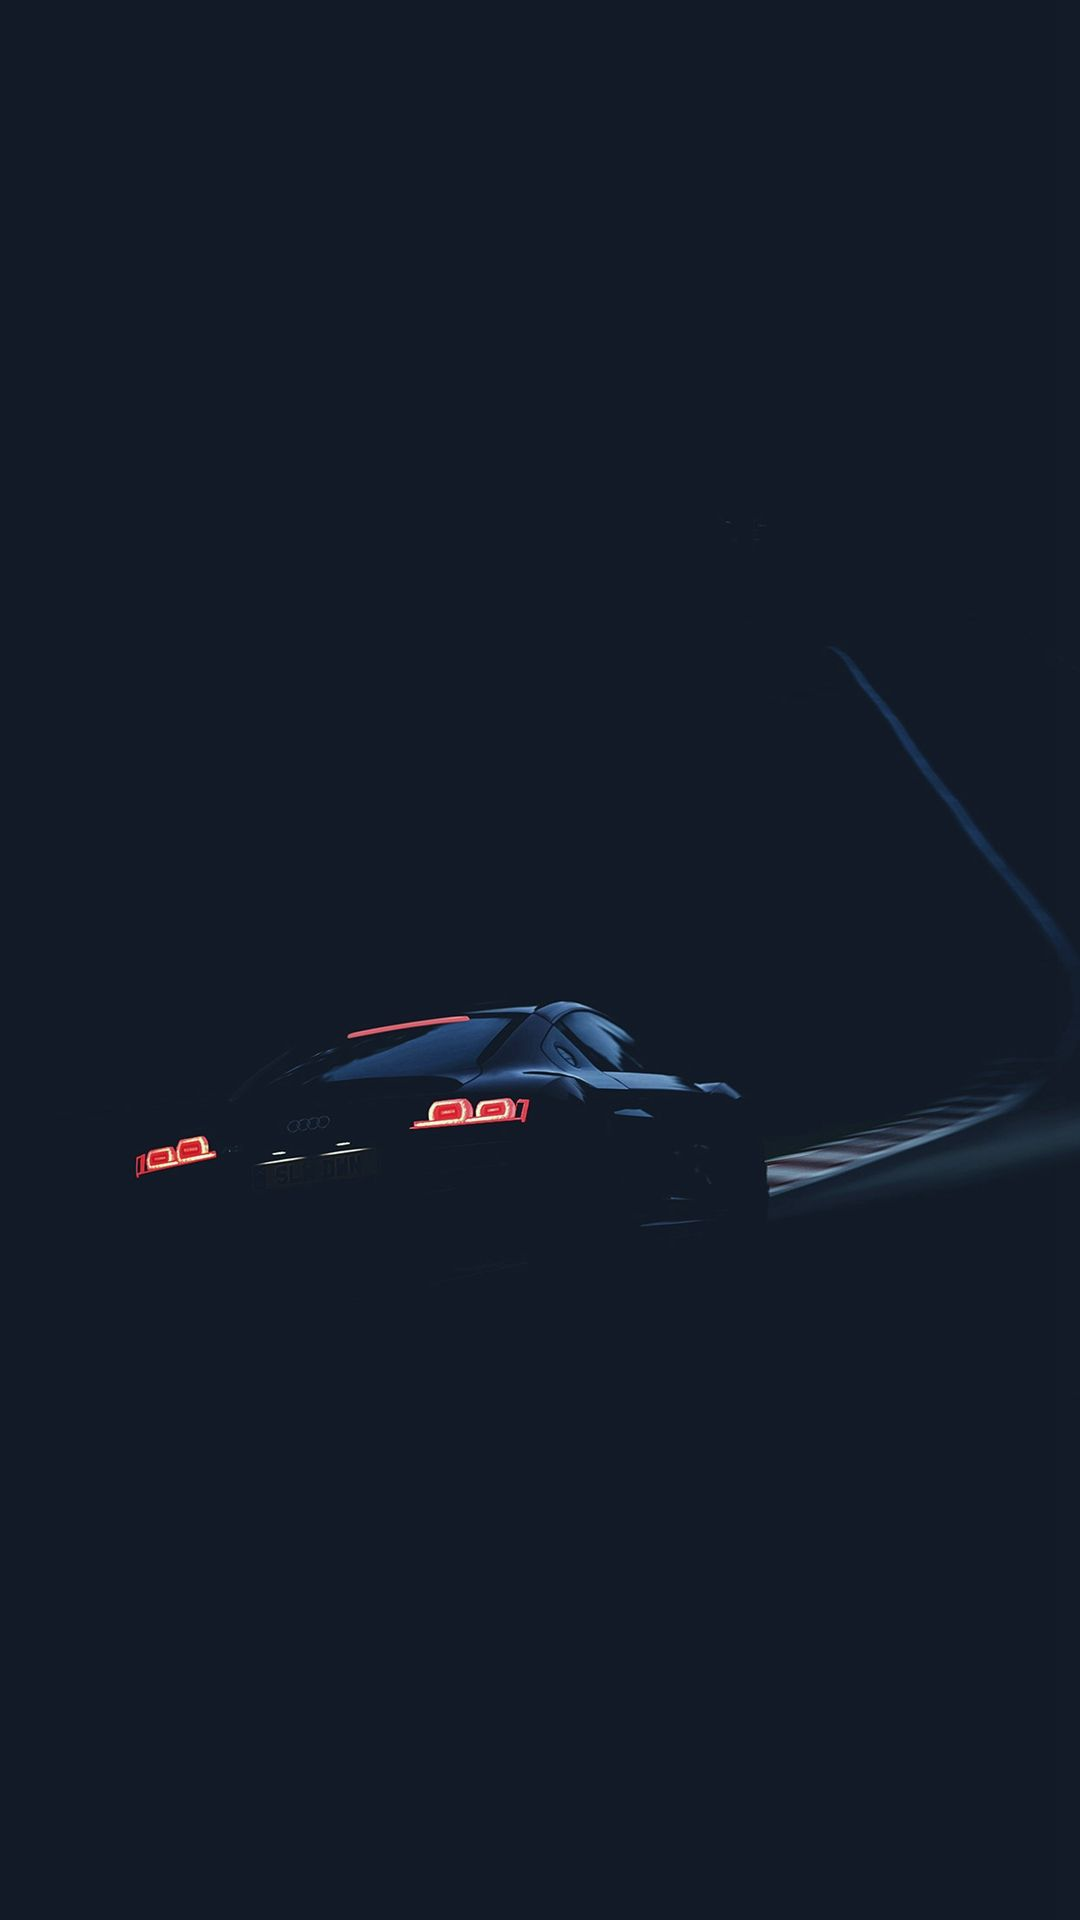 Audi Car Drive Blue Dark Road Street Iphone 6 Plus Wallpaper